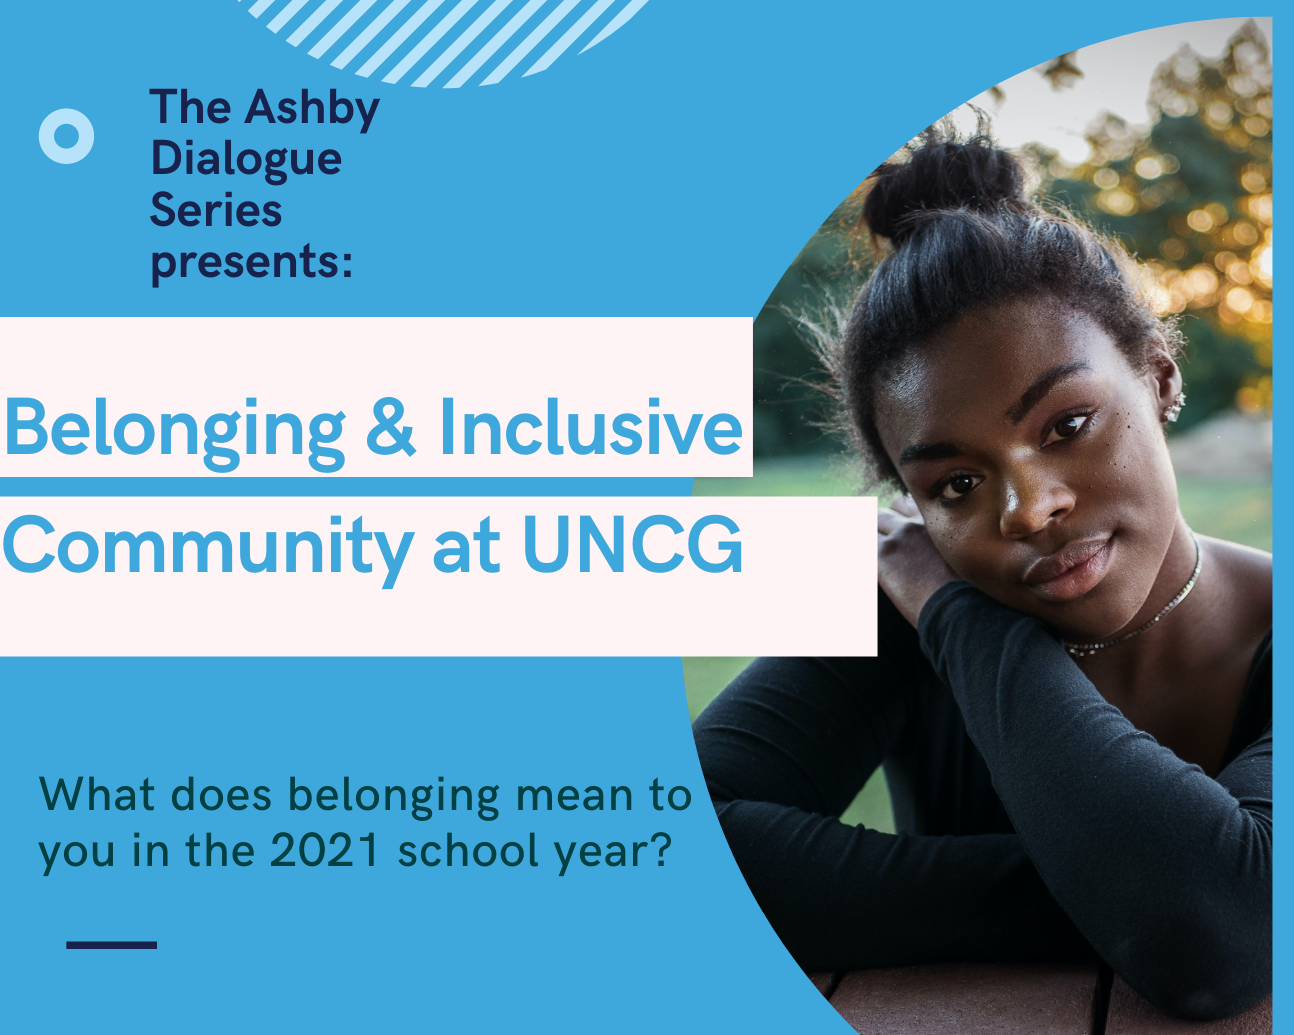 Belonging and Inclusive Community at UNCG